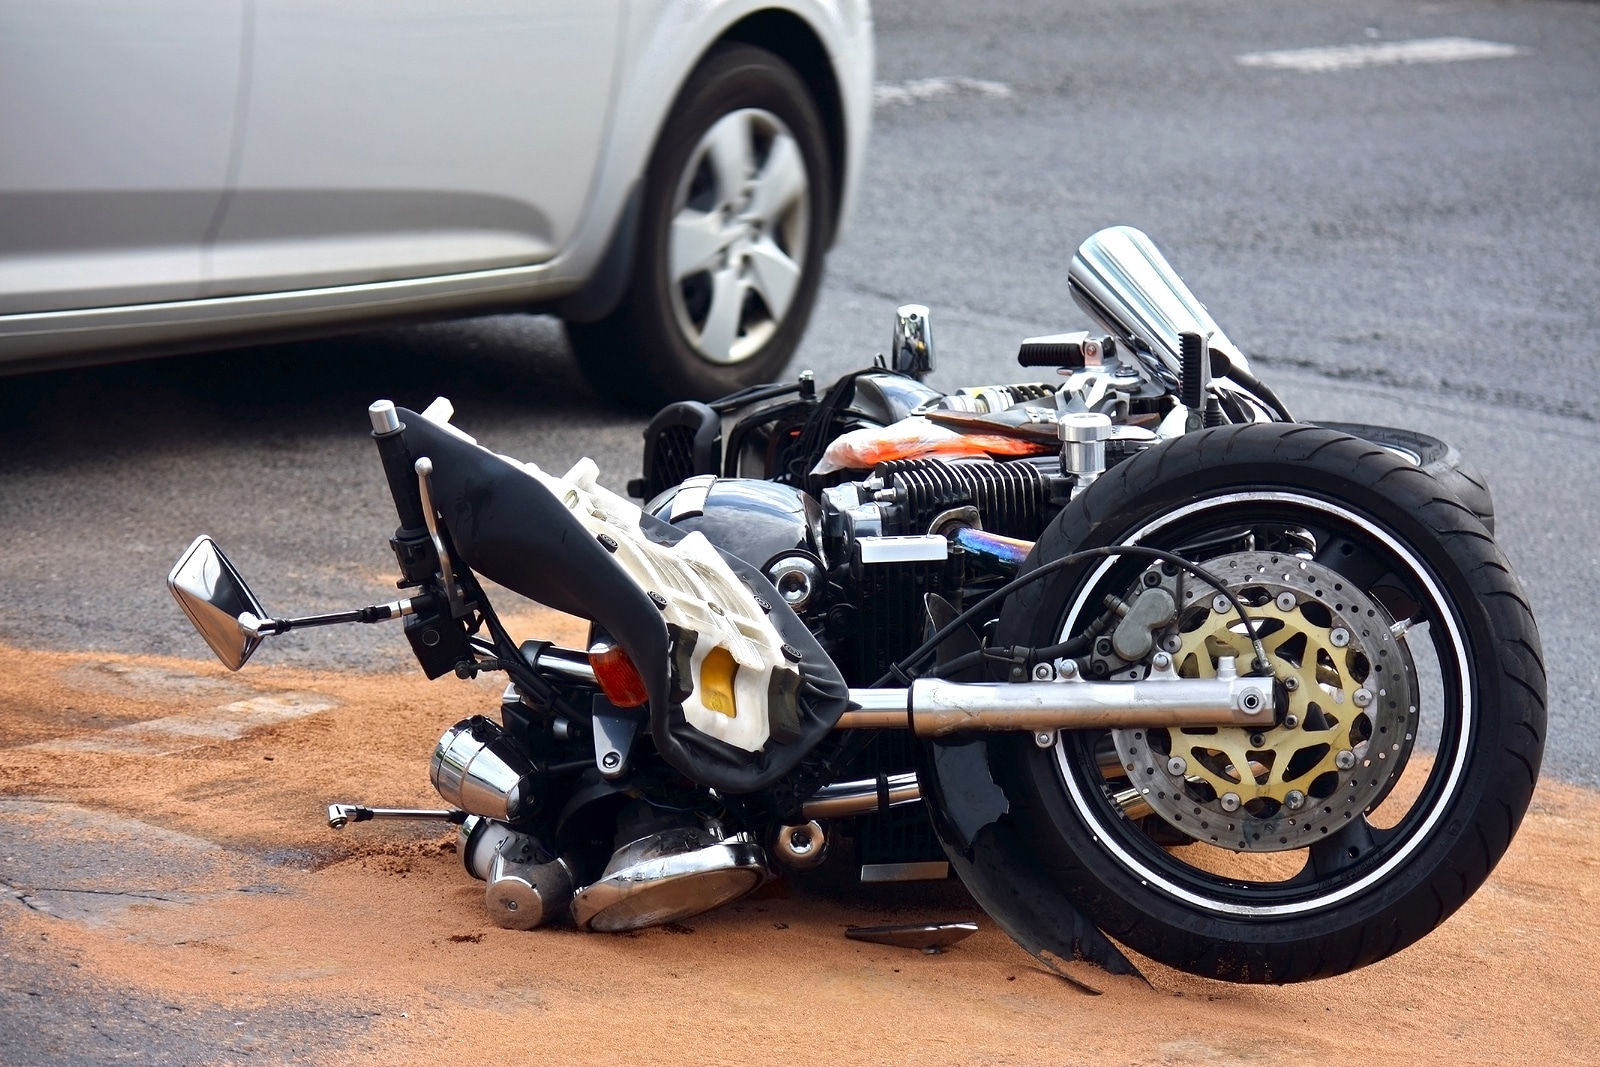 Motorcycle Crashes Decrease but Fatality Risk Remains High